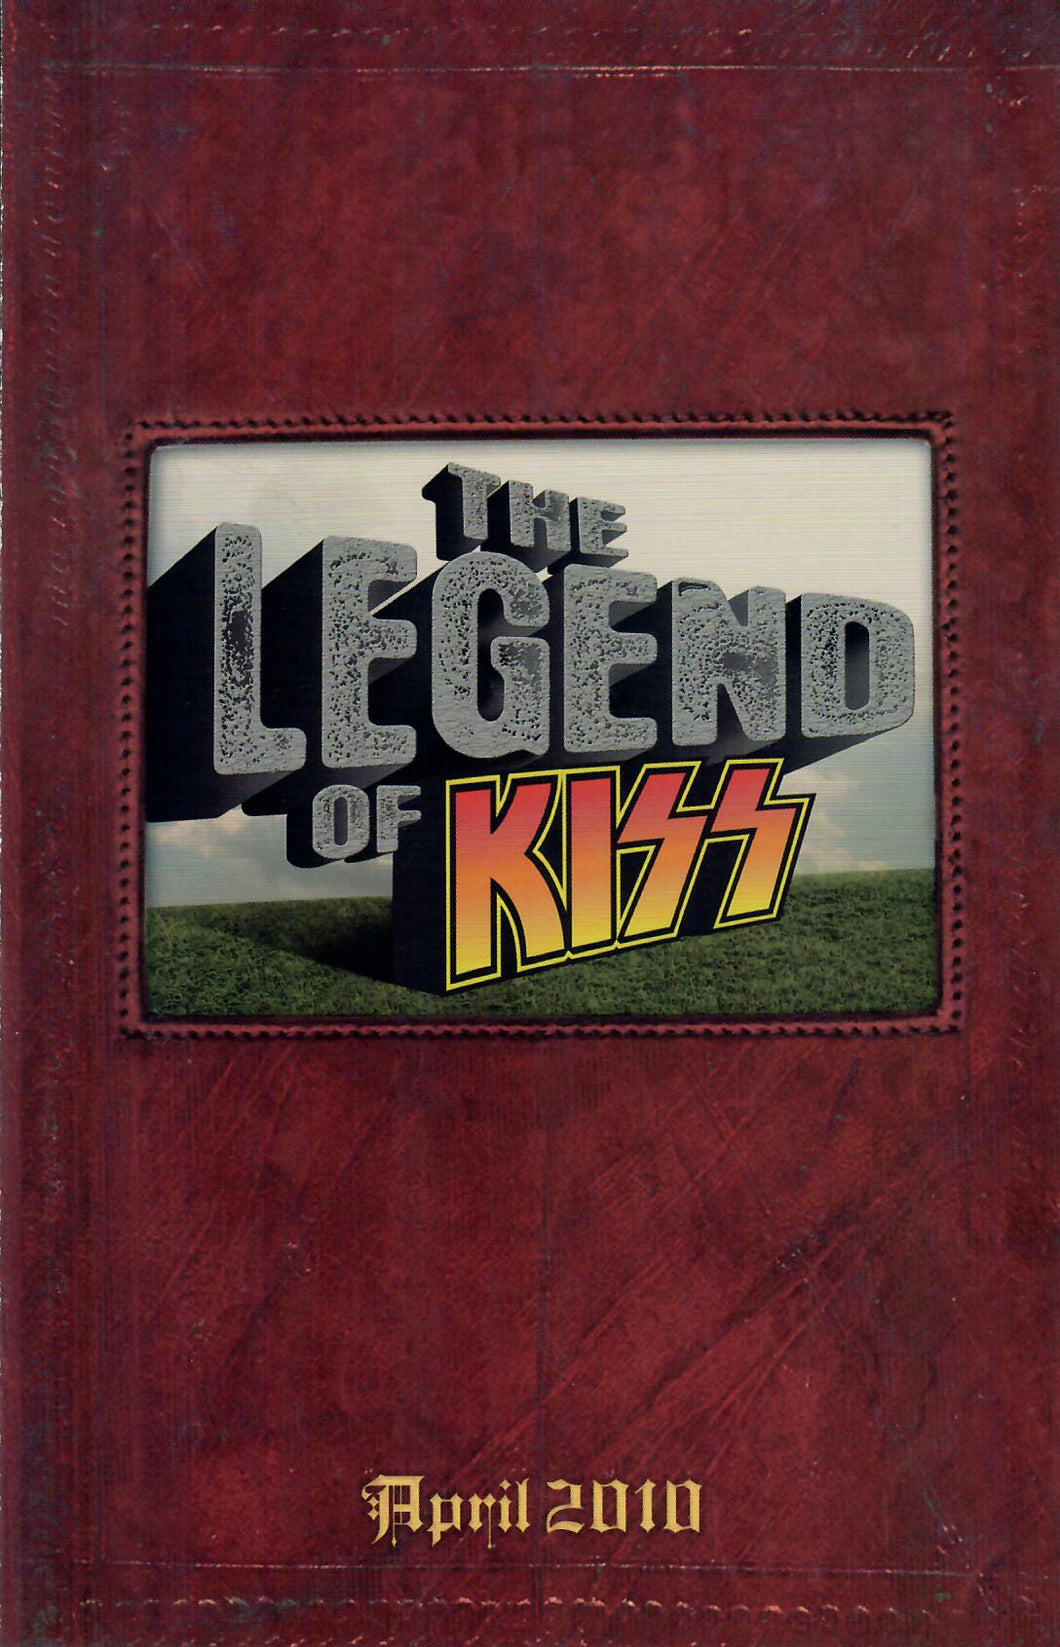 Sell Sheet - KISS - The Legend of Trading Cards Collection - Fold Open Sell Sheet